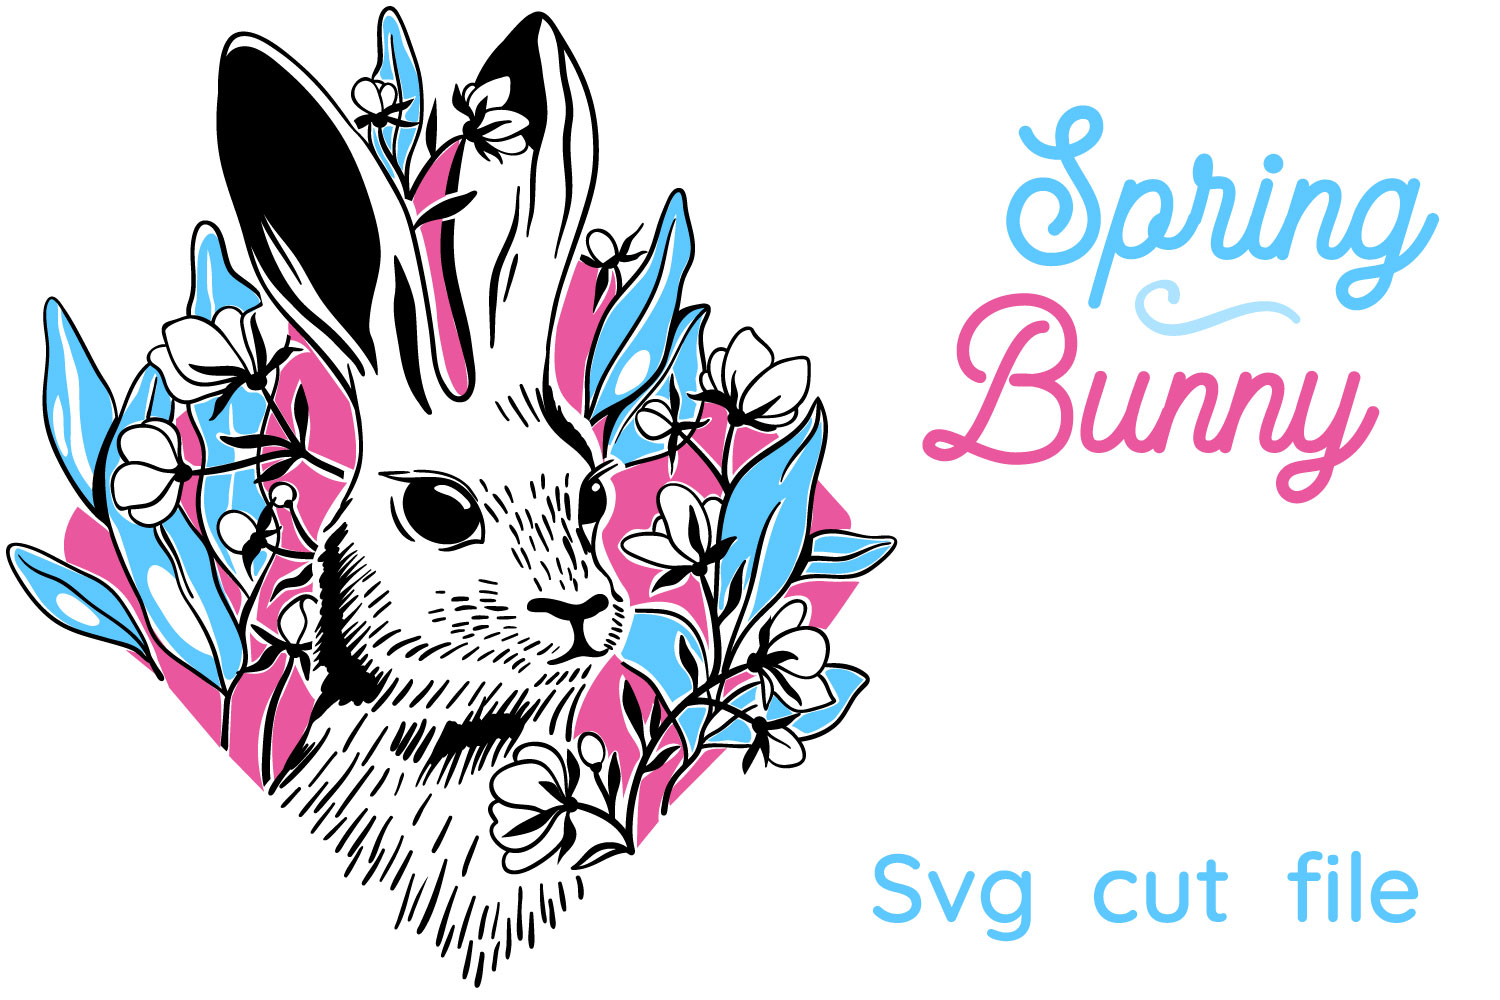 Download Free Spring Bunny Graphic By Tatiana Cociorva Creative Fabrica for Cricut Explore, Silhouette and other cutting machines.